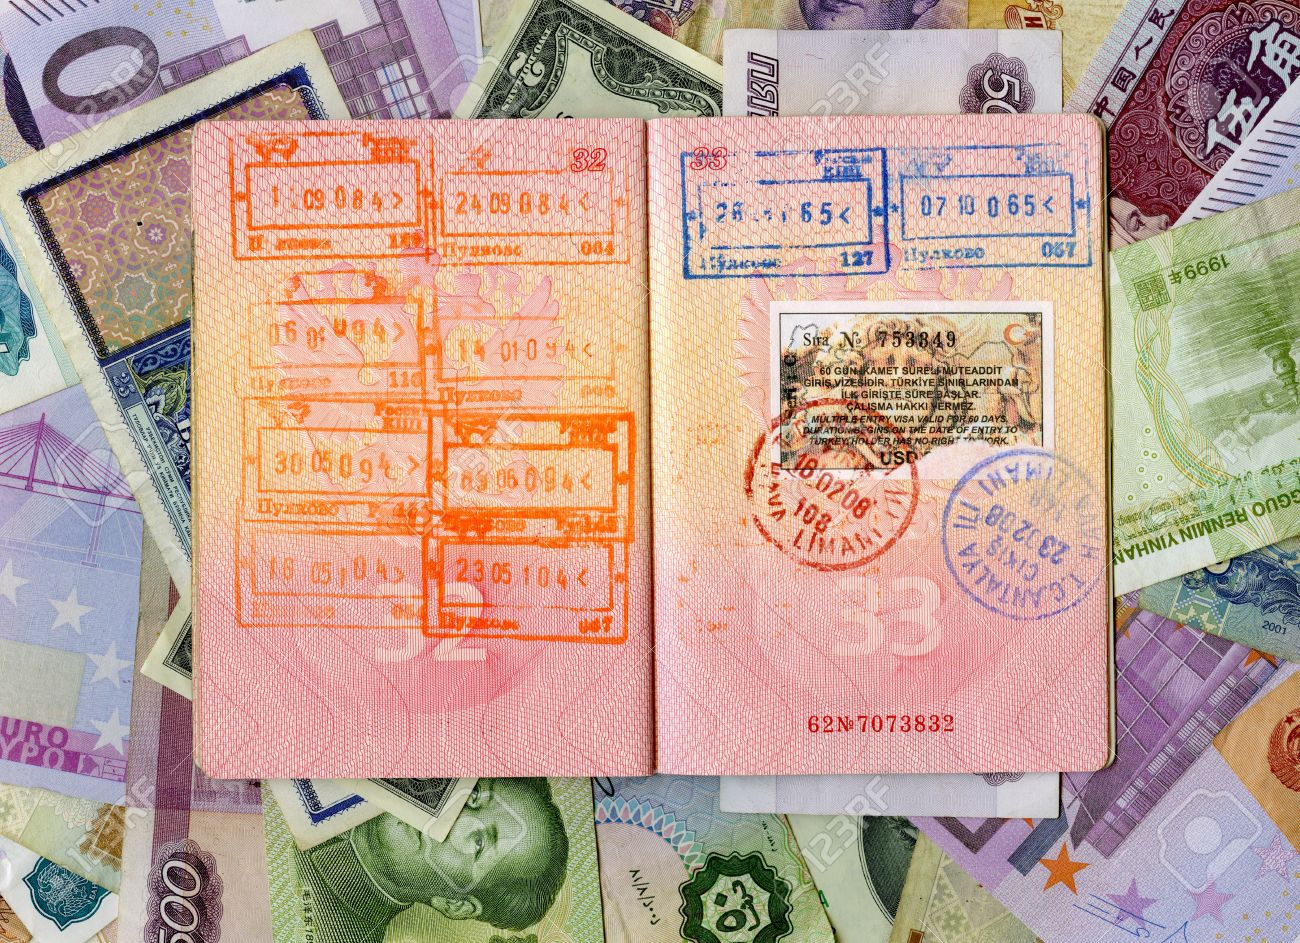 Passport With Turkish Visa And Stamps On A Different Money Background Stock  Photo, Picture And Royalty Free Image. Image 12505393.